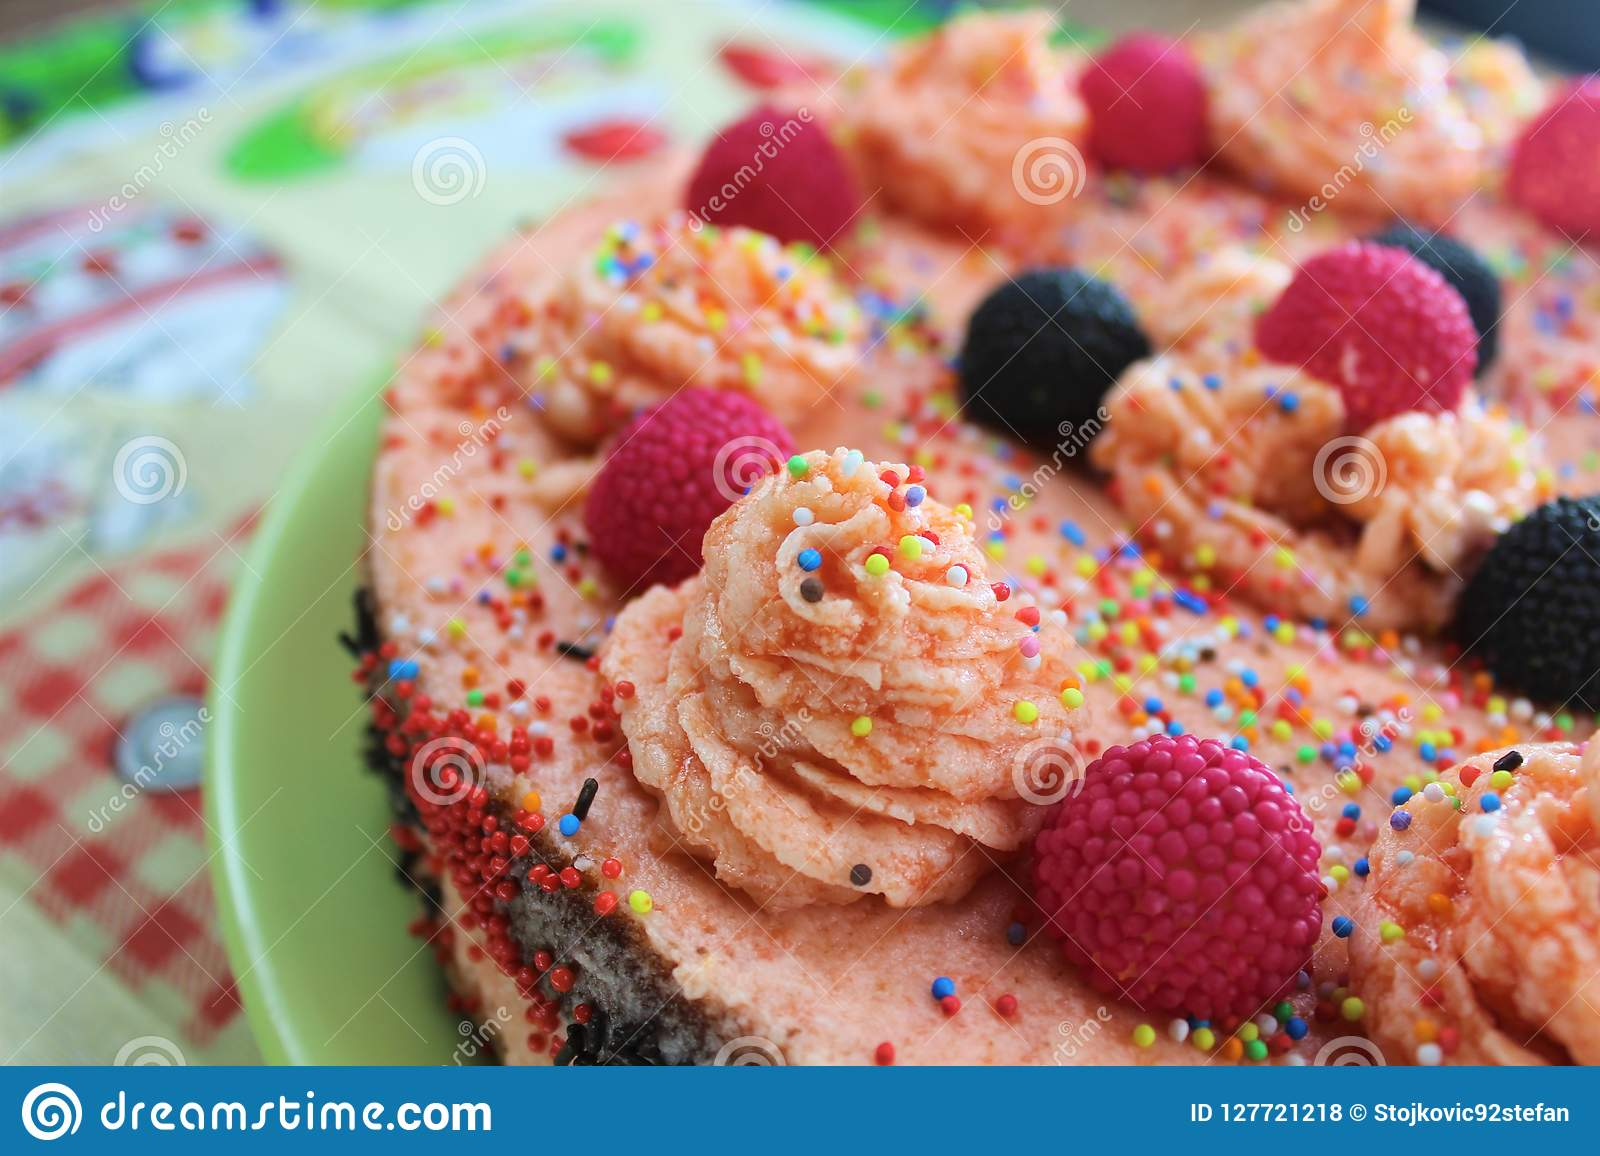 Cake with strawberries, blackberries and colorful sprinkles on the green plate and colorful strawberry